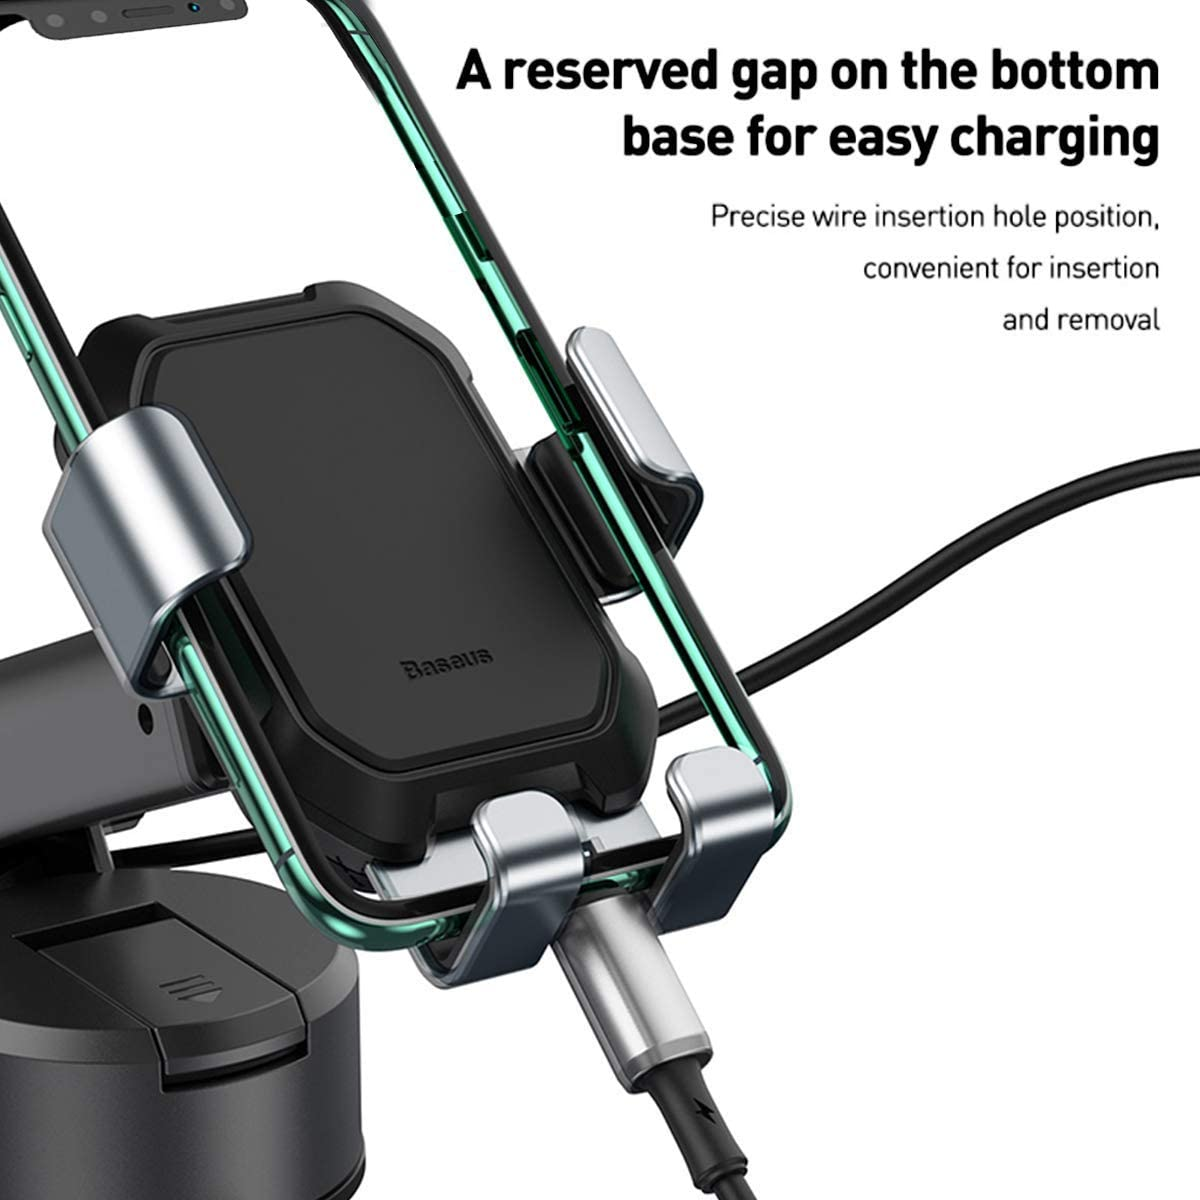 11 XS Max//XS 8 Plus Samsung All Phones Baseus Car Cell Phone Holder Mount Universal Gravity Strong Suction Windshield Dashboard Hands Free Car Mobile Phone Holders for iPhone 12//11 Pro Max